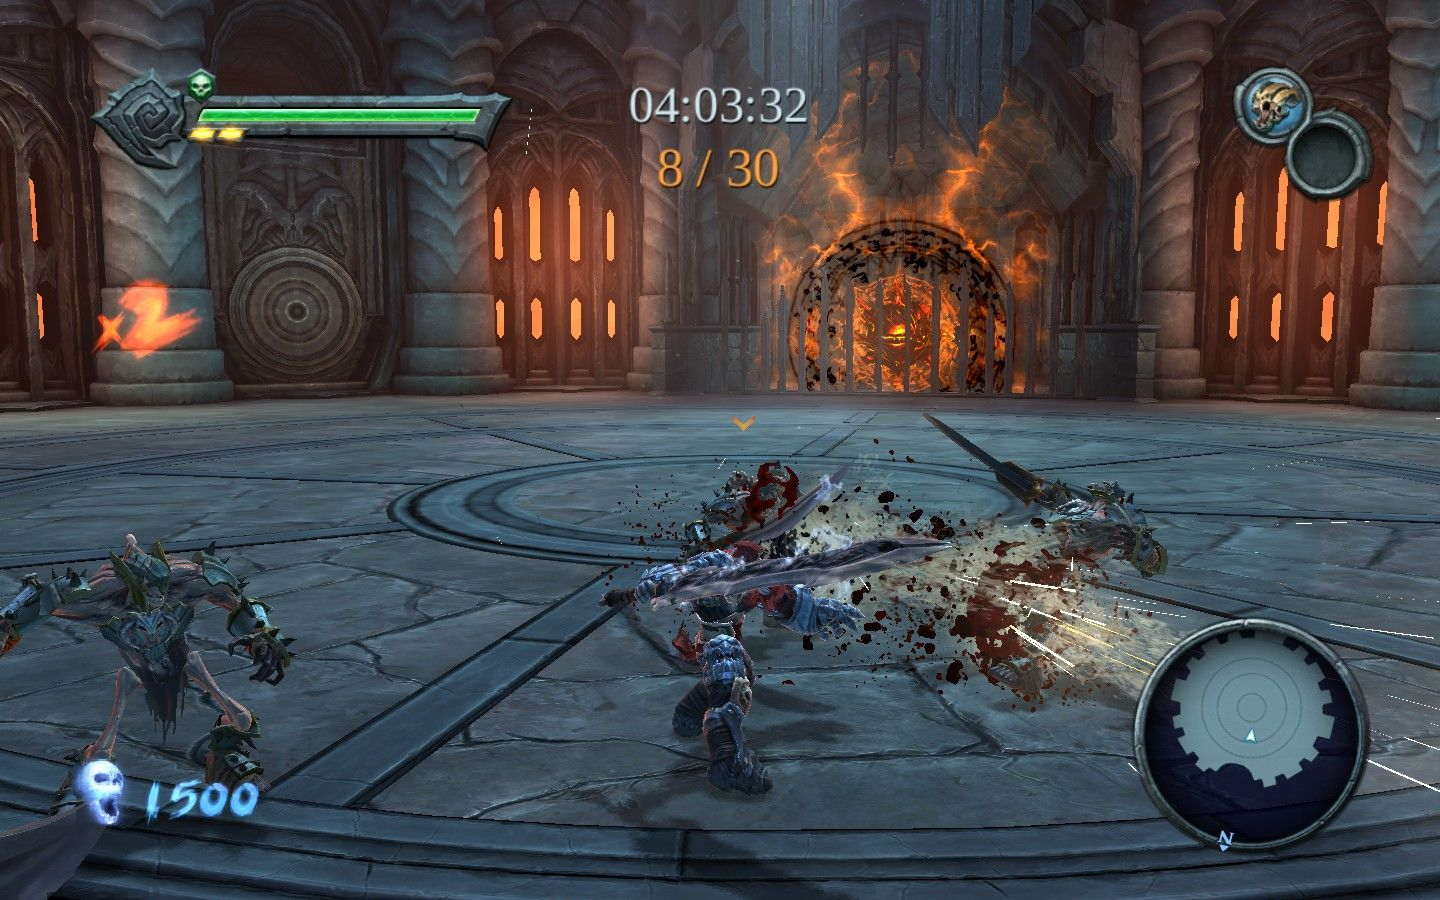 Darksiders Windows The many ways of the art: #1 Caress enemies with the Chaoseater.